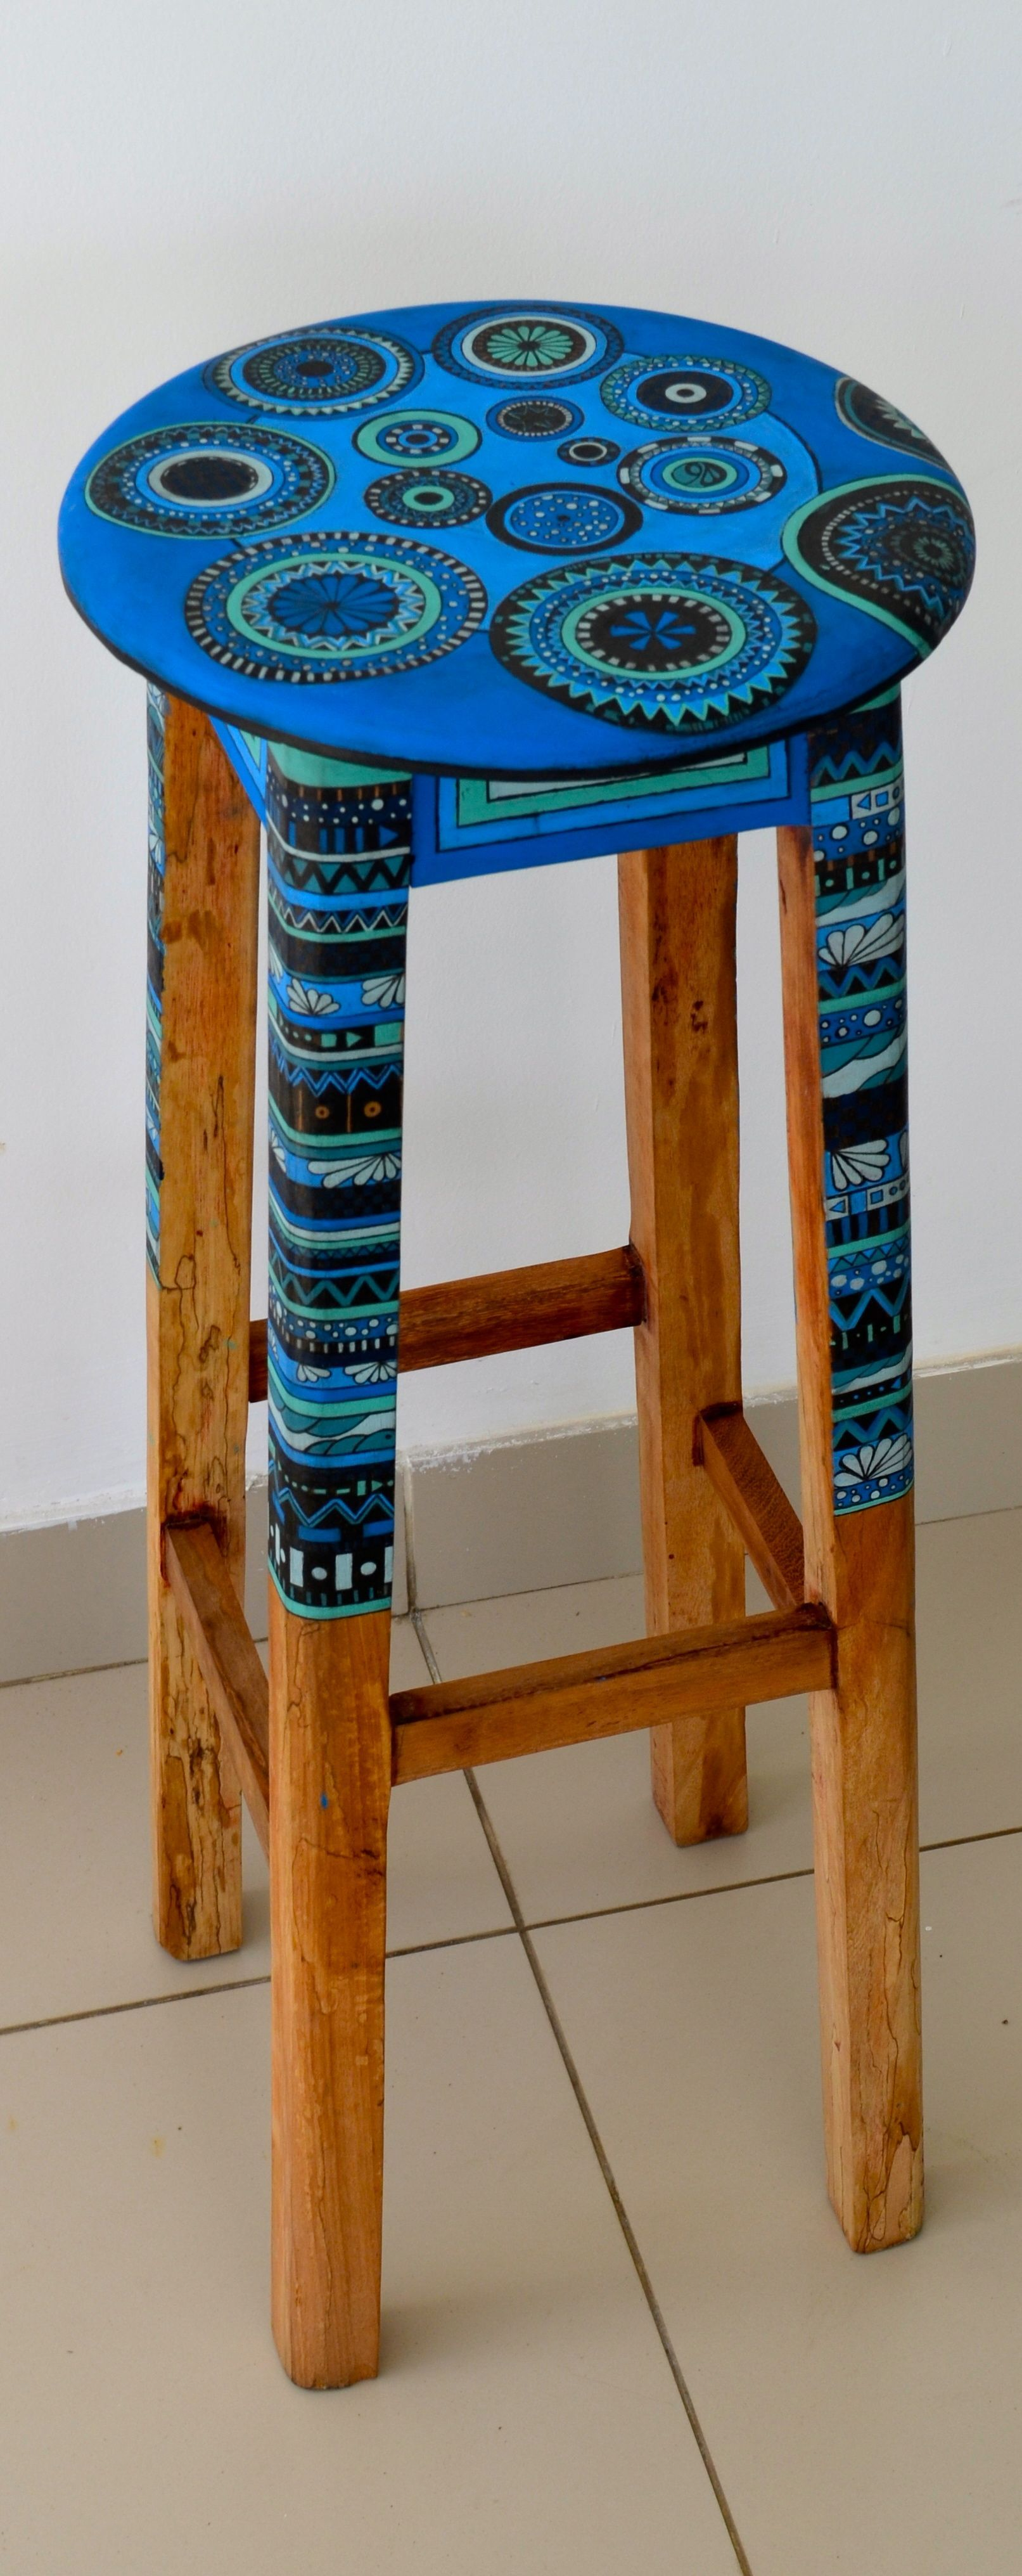 Hand Painted Wooden Stool By Hc Wood Design Painted Furniture Pinterest Wooden Stools